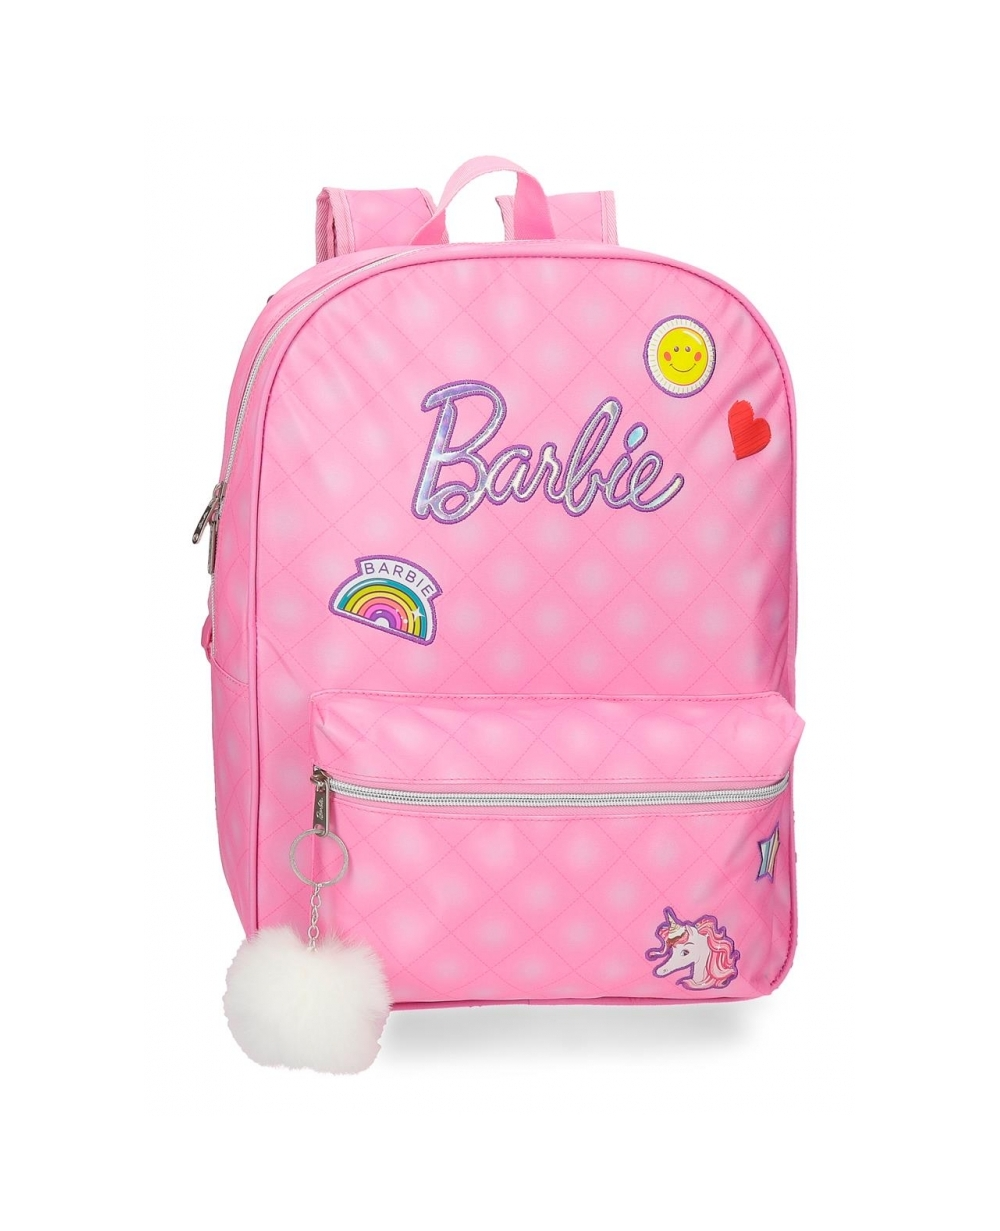 Barbie Mochila  42 cm adaptable a carro Rosa (Foto )